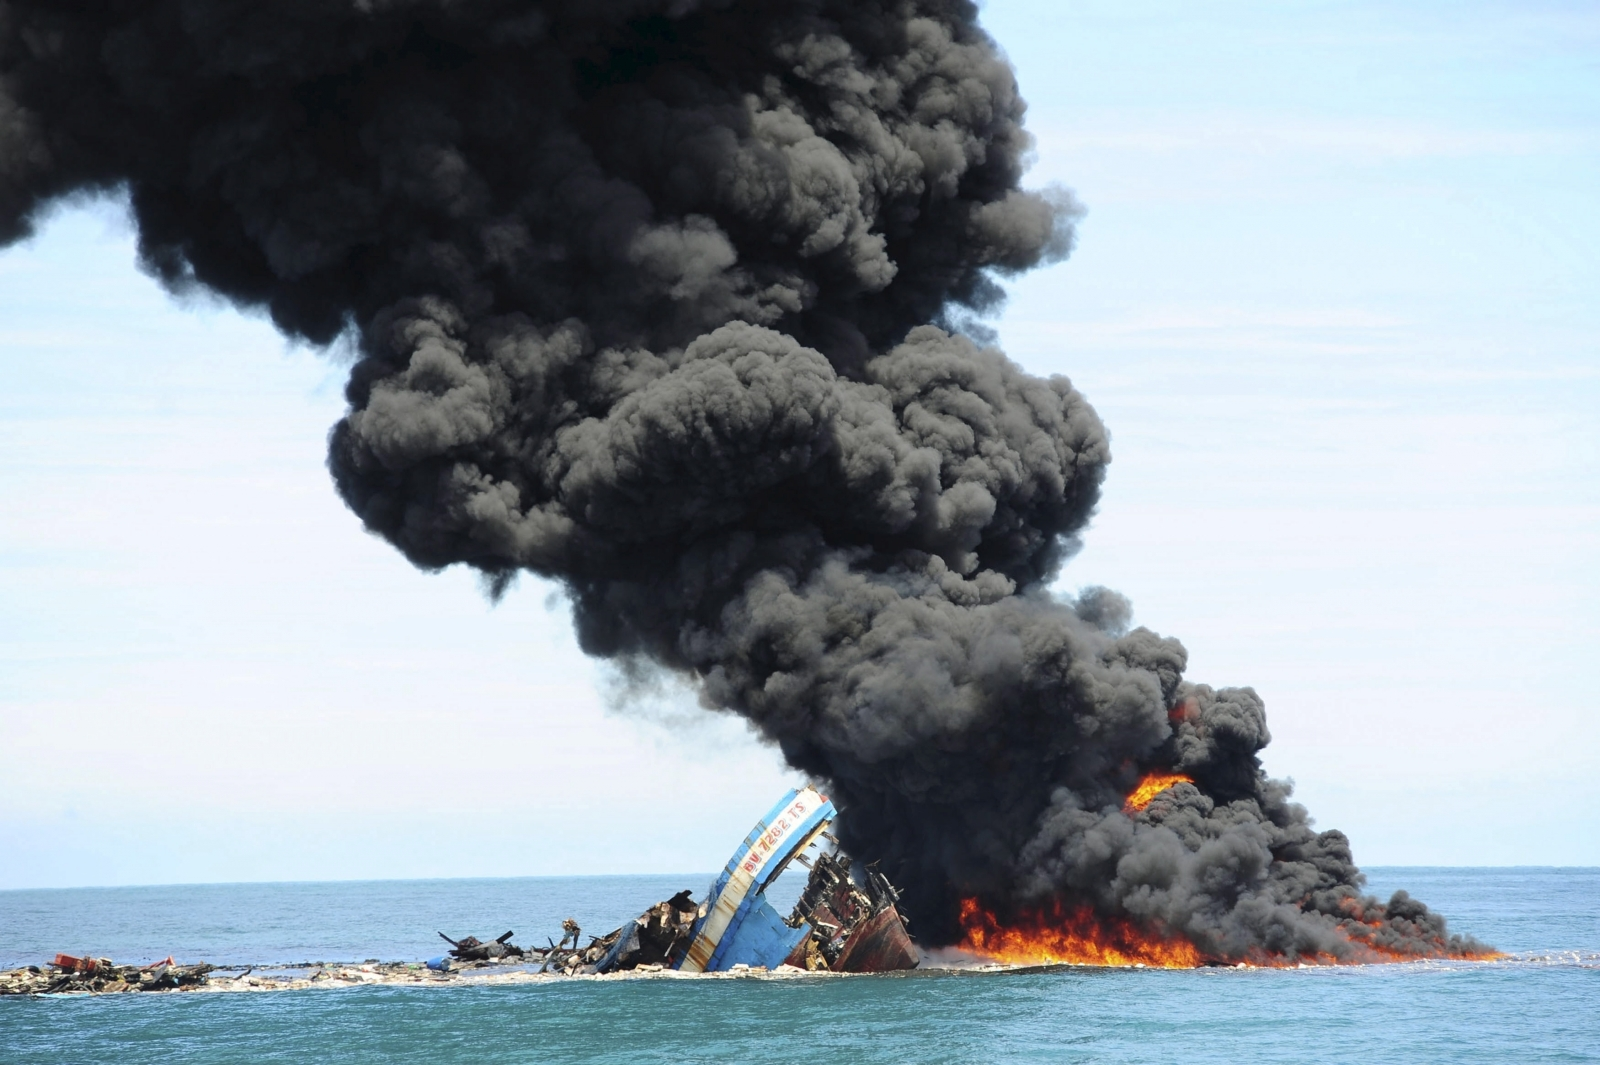 Illegal fishing boat set on fire